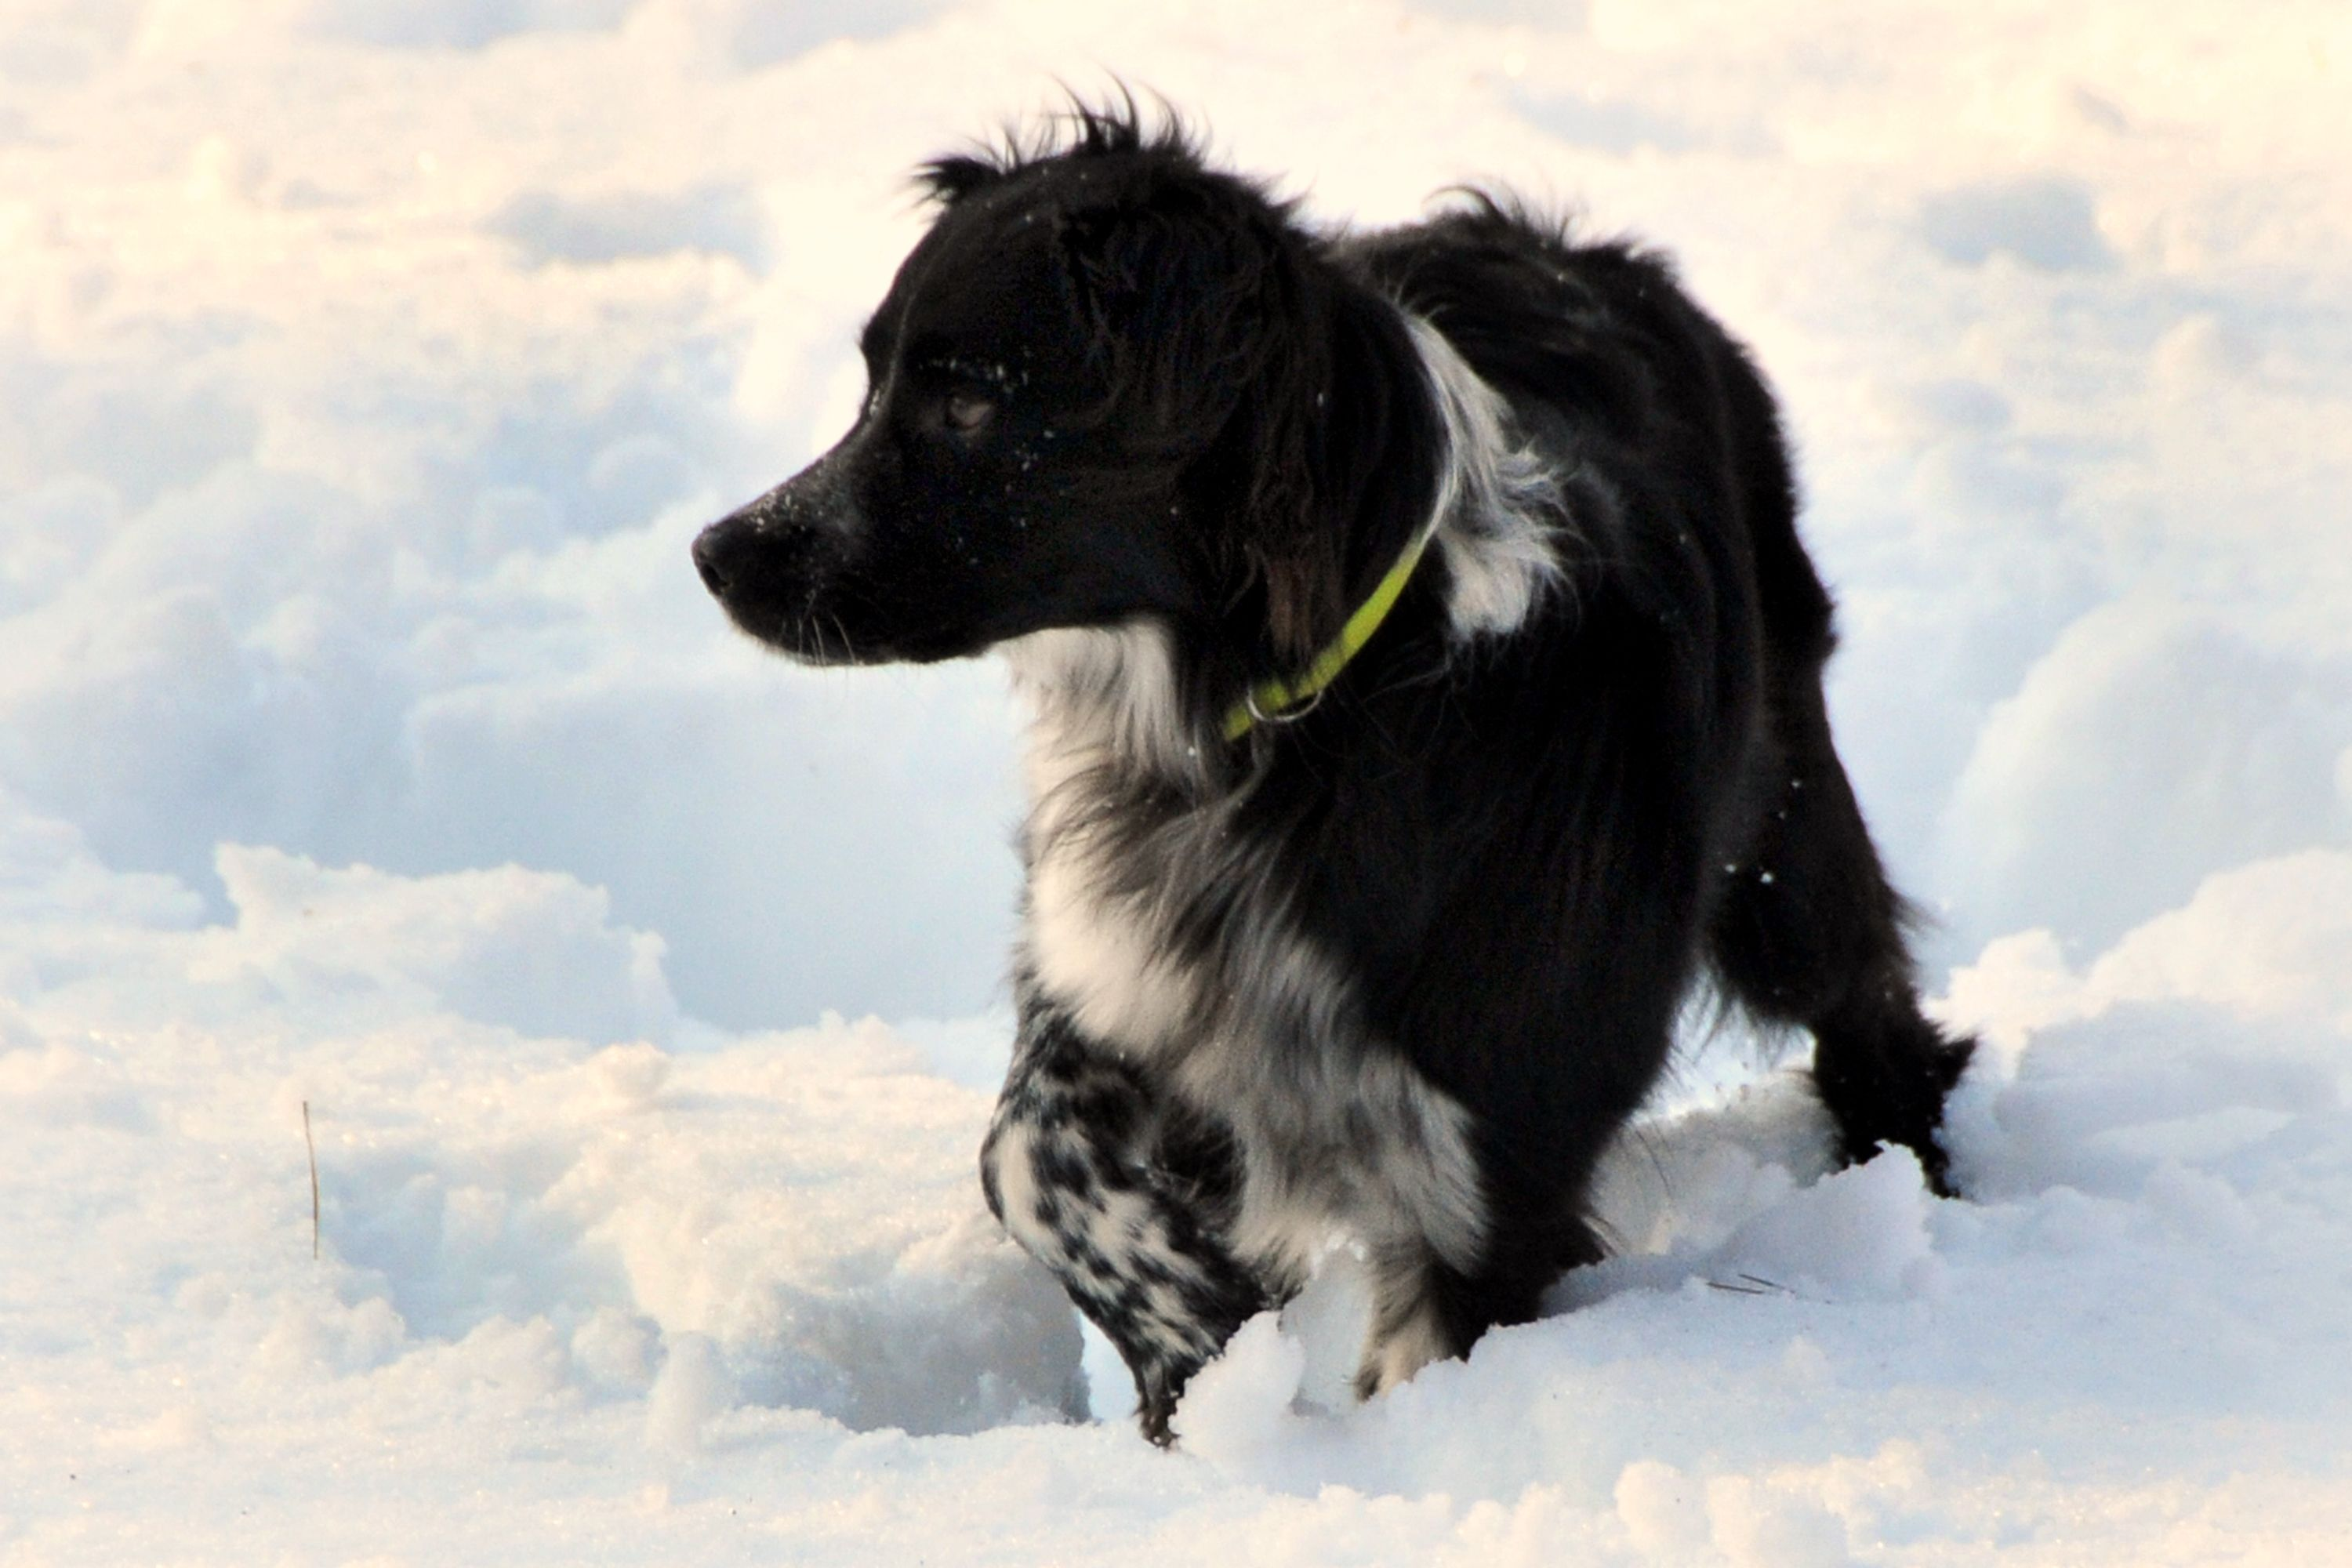 Great puppy training tips for border collies. Photos by